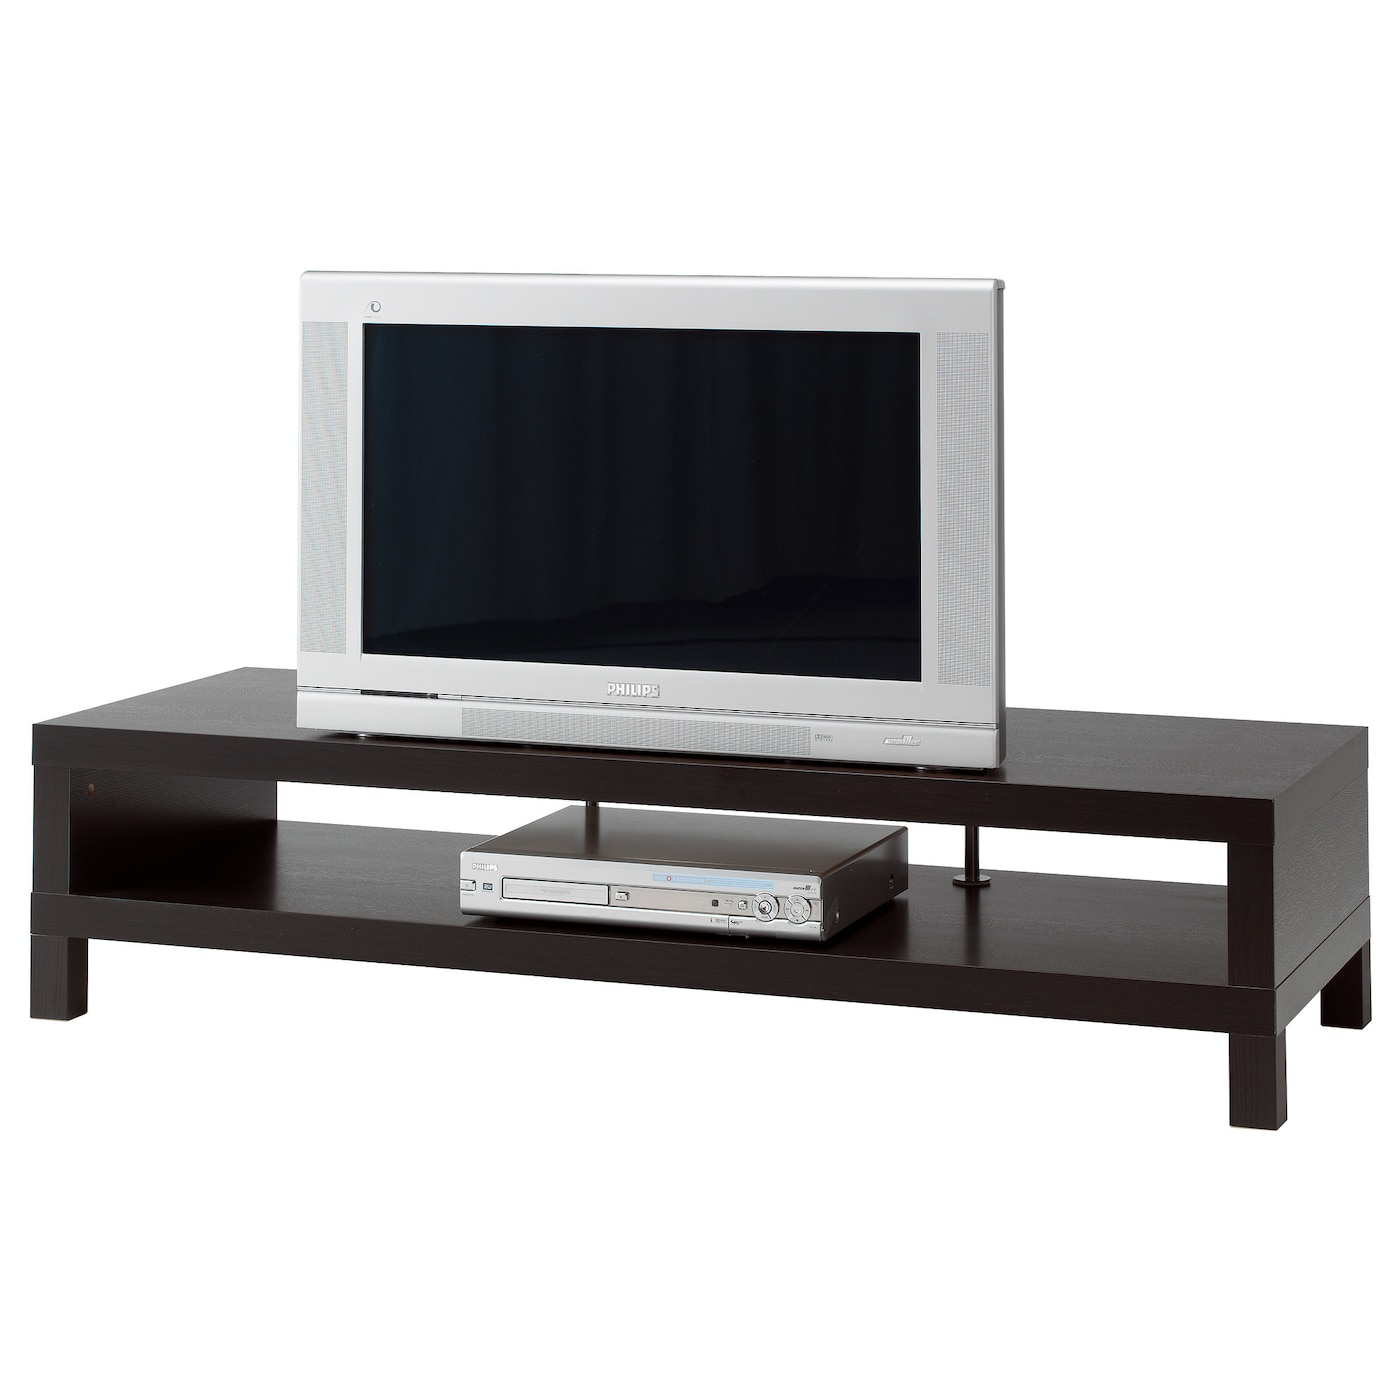 lack tv bench black brown 149x55 cm ikea. Black Bedroom Furniture Sets. Home Design Ideas